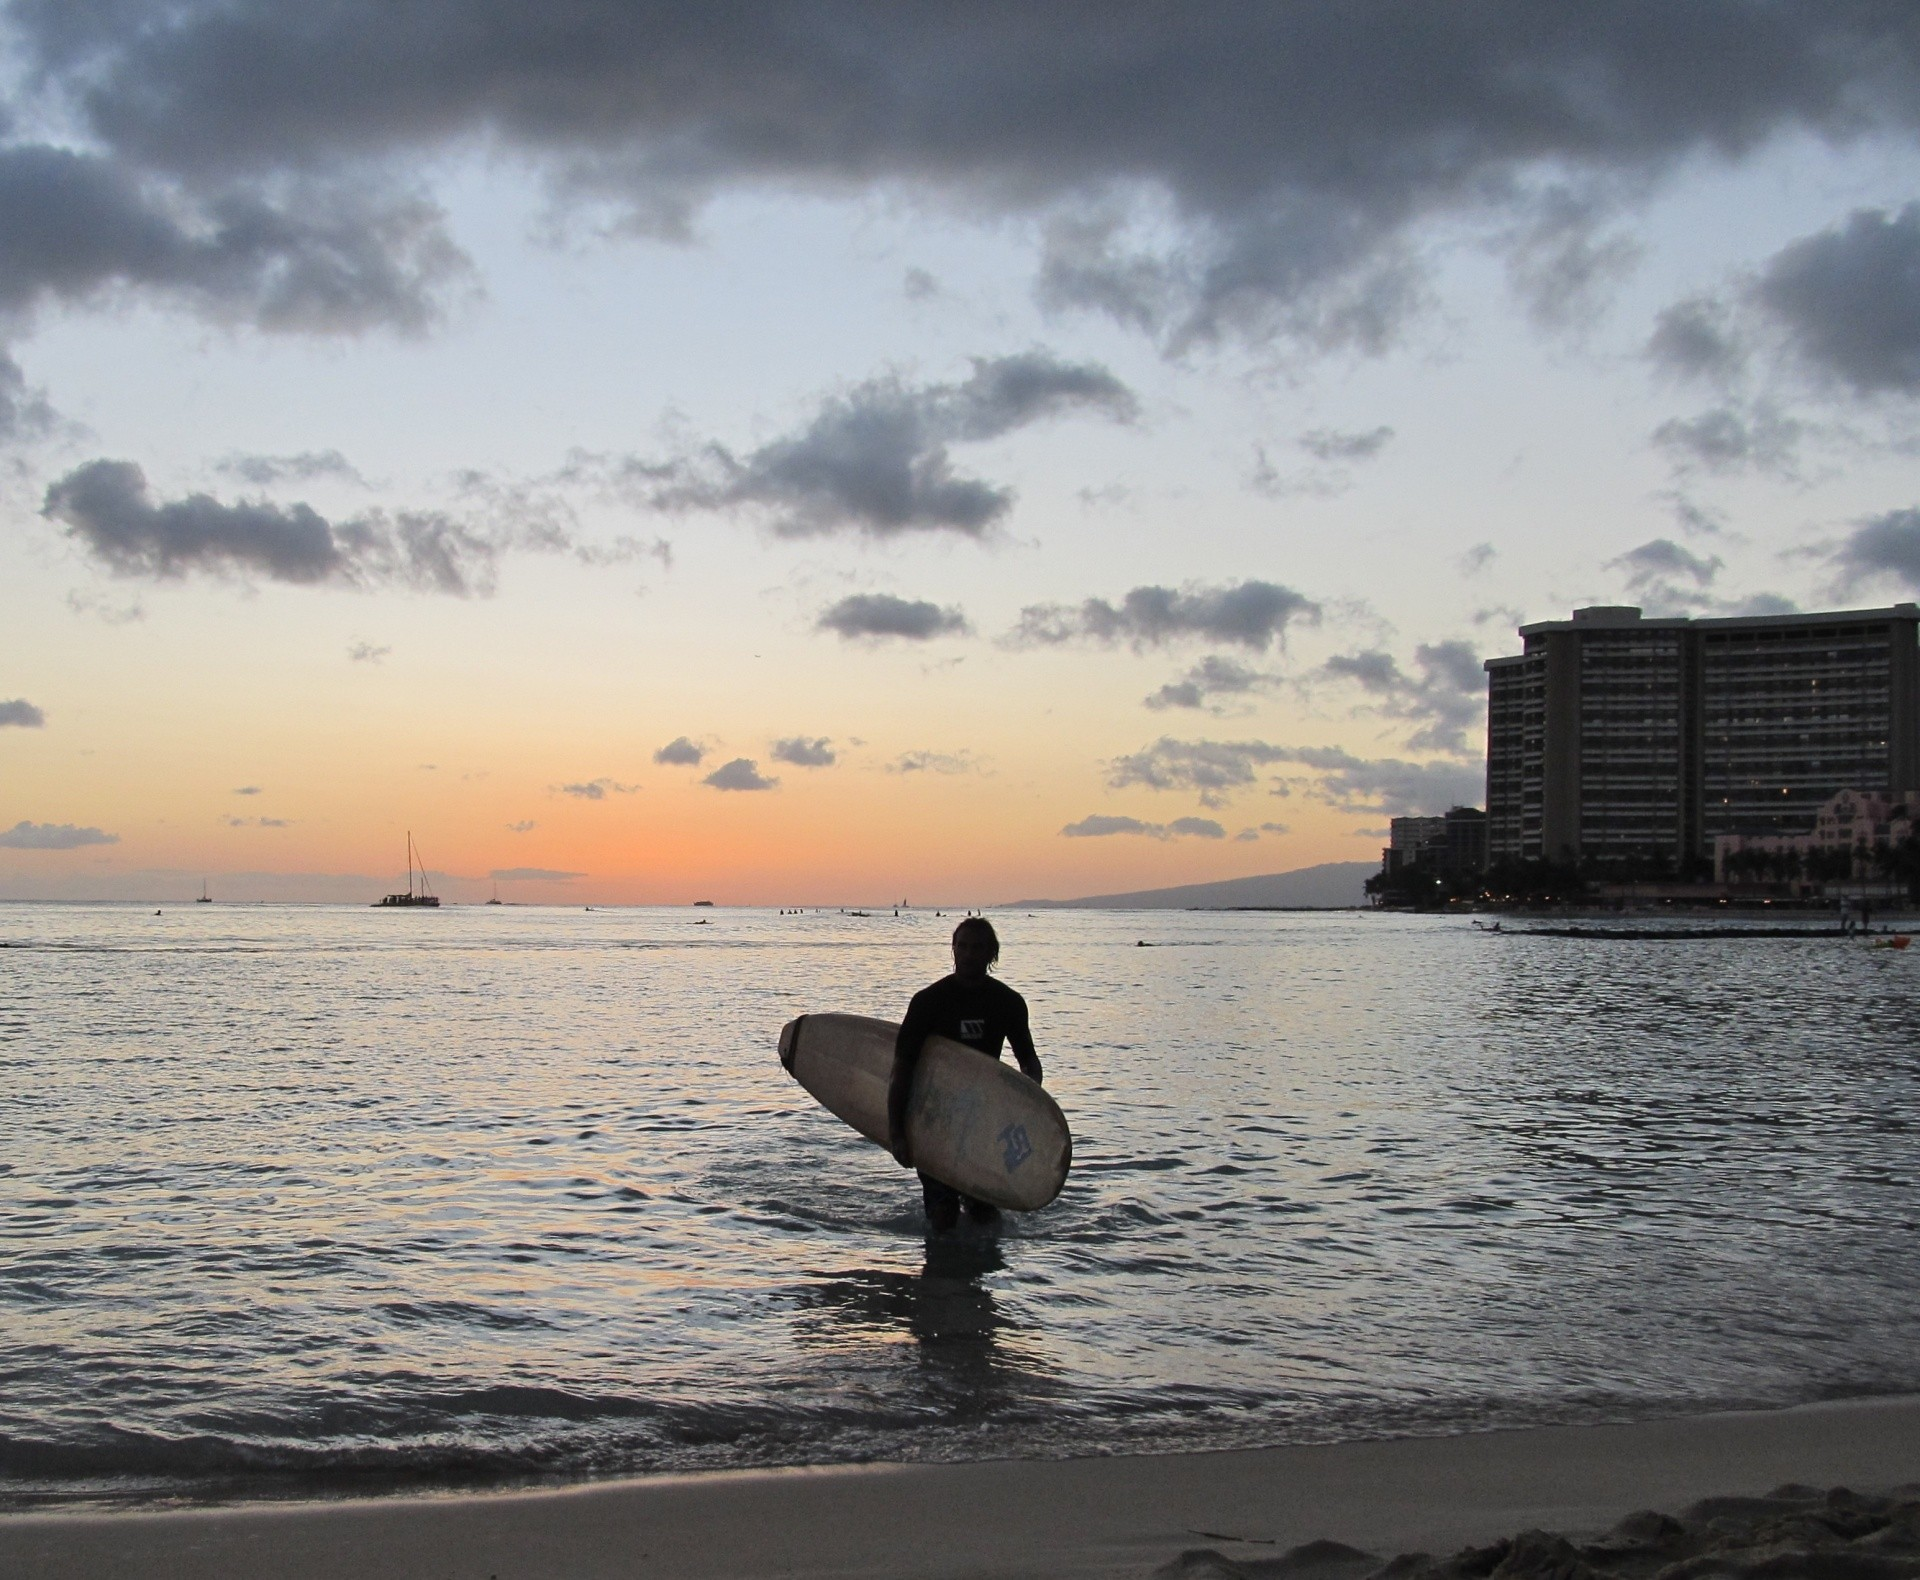 scr nyc's photo of Queens/Canoes (Waikiki)